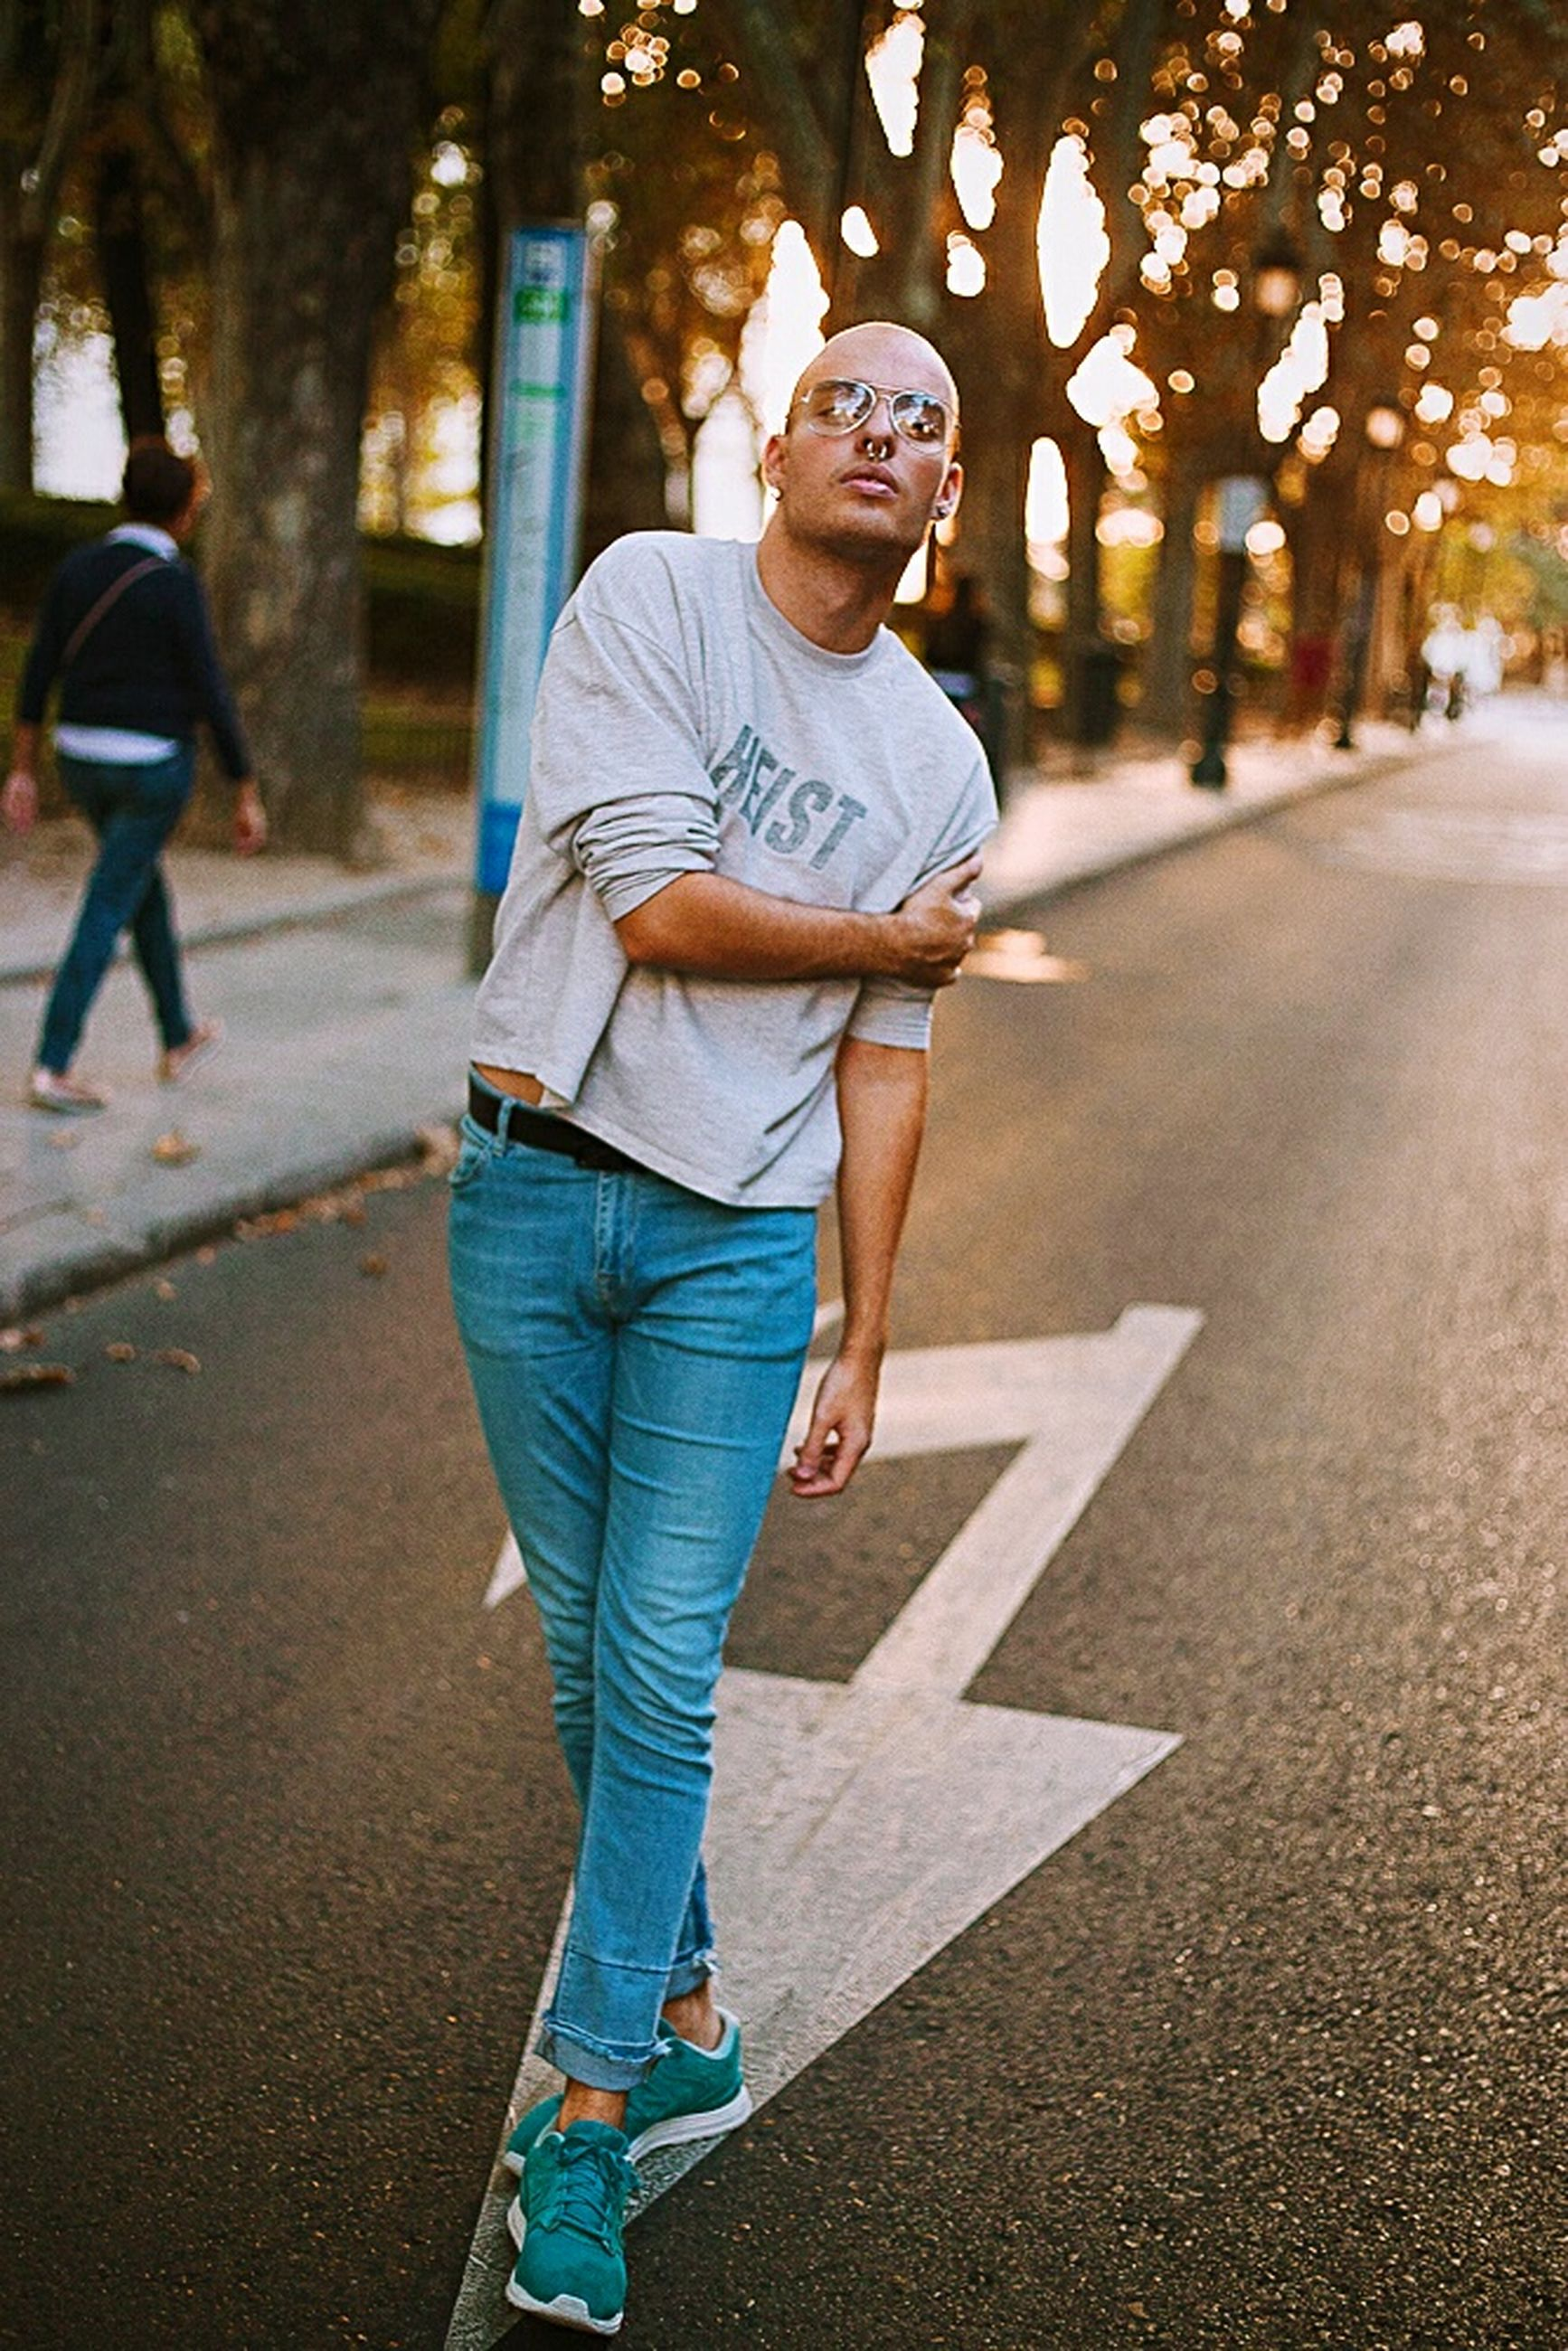 casual clothing, full length, one person, jeans, lifestyles, street, road, mature adult, front view, outdoors, mature men, adult, adults only, people, one man only, only men, men, day, portrait, city